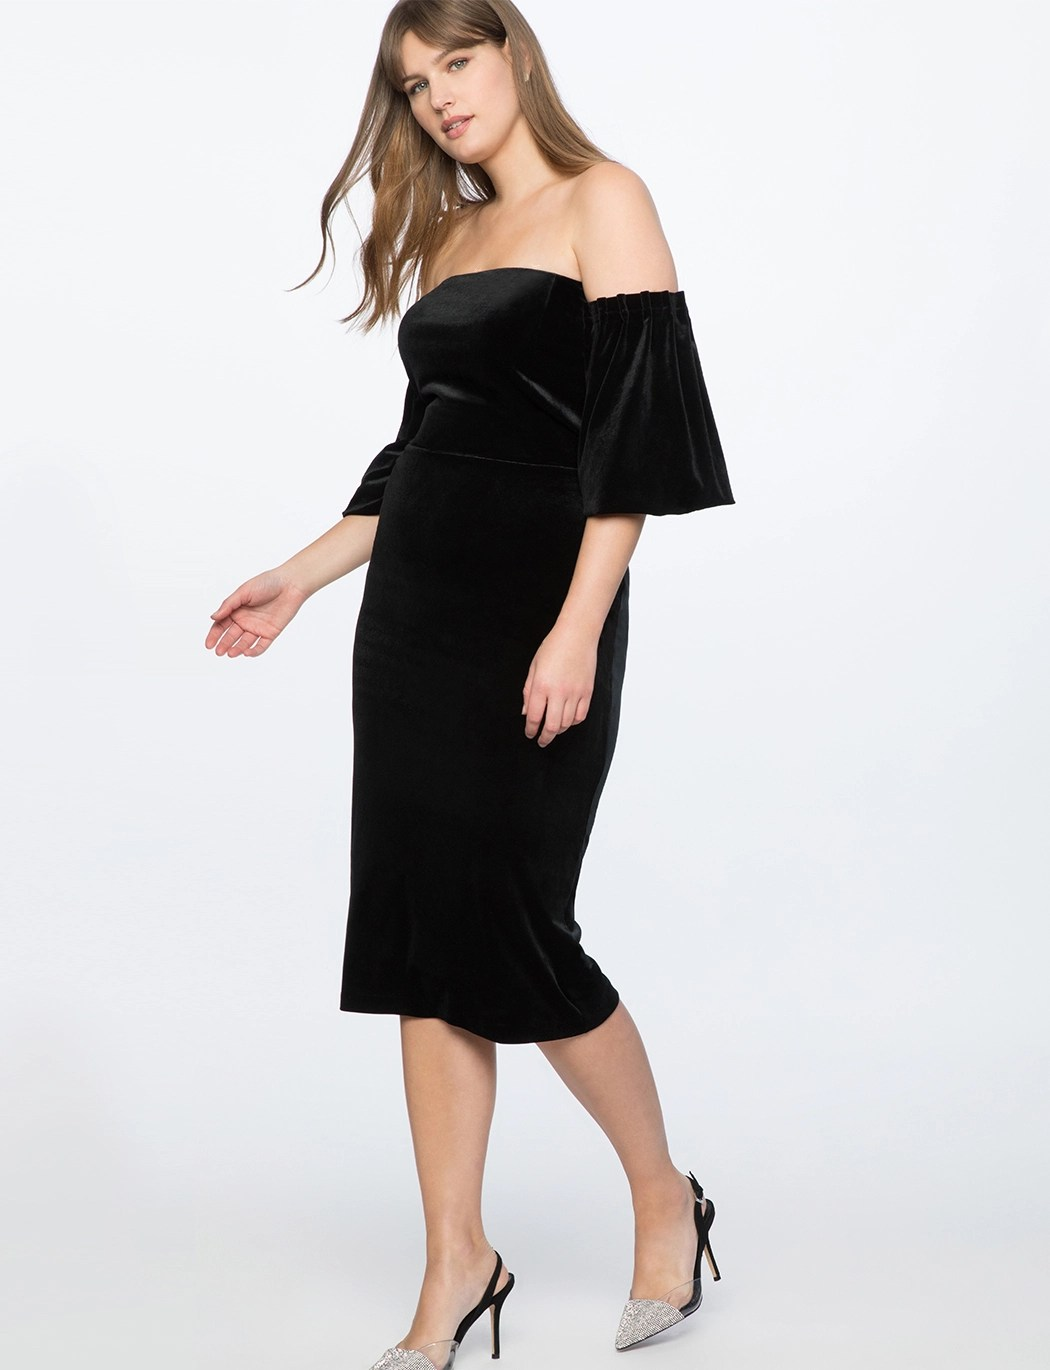 Strapless Velvet Dress with Full Sleeves 7